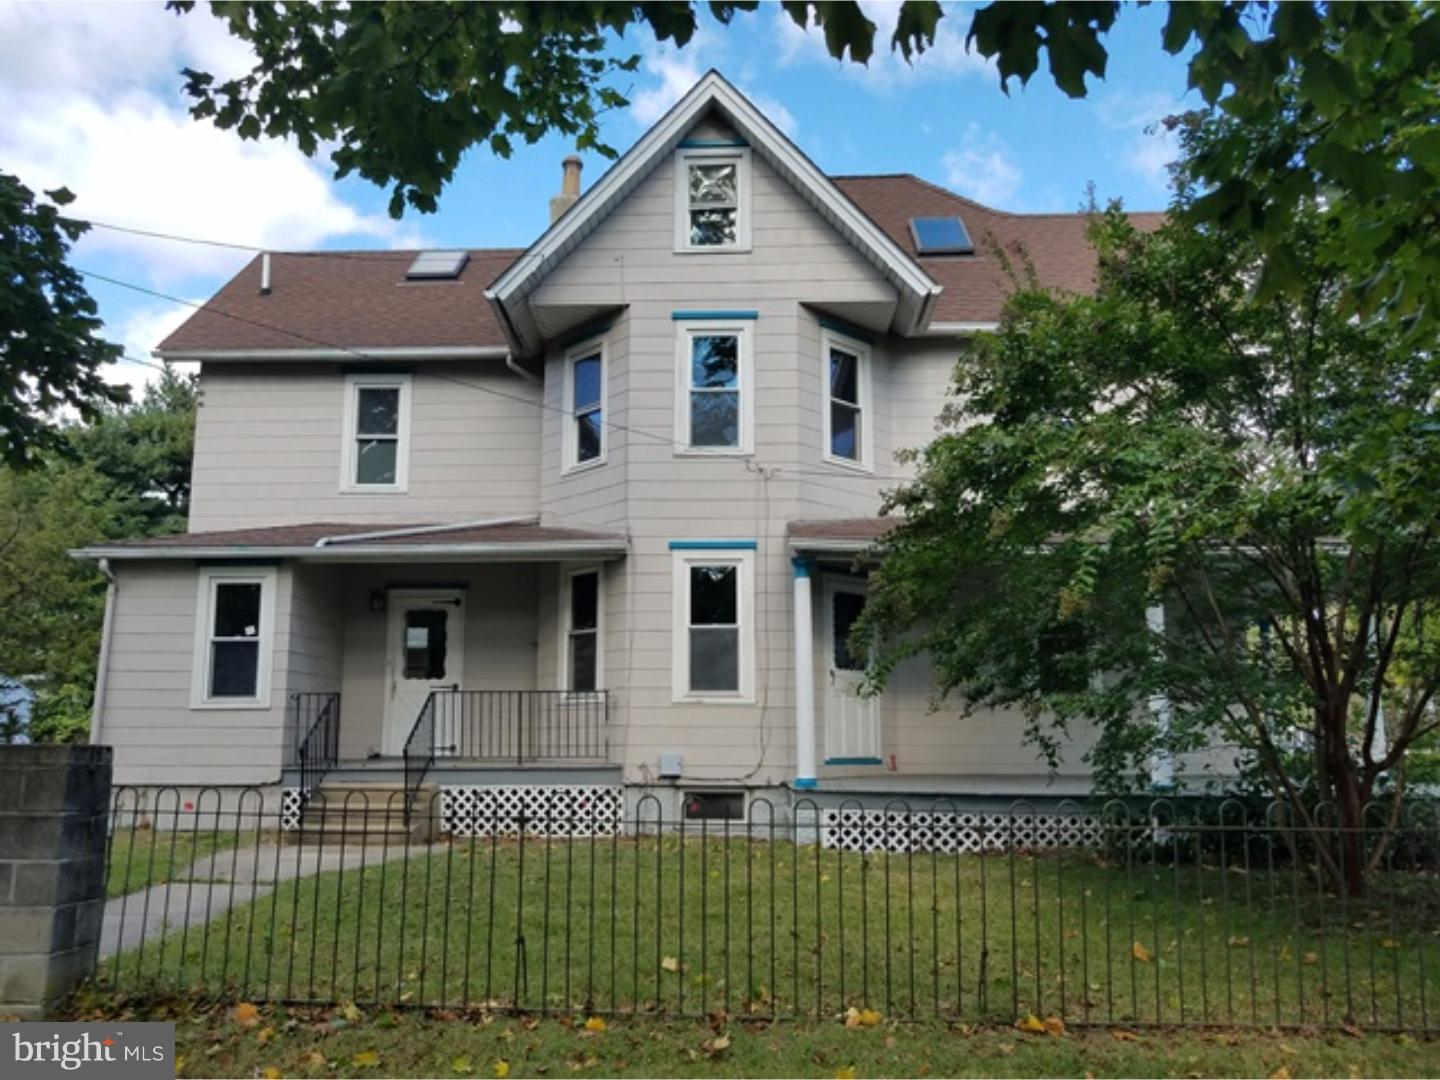 Single Family Home for Sale at 230 DELAWARE Avenue Riverside, New Jersey 08075 United States